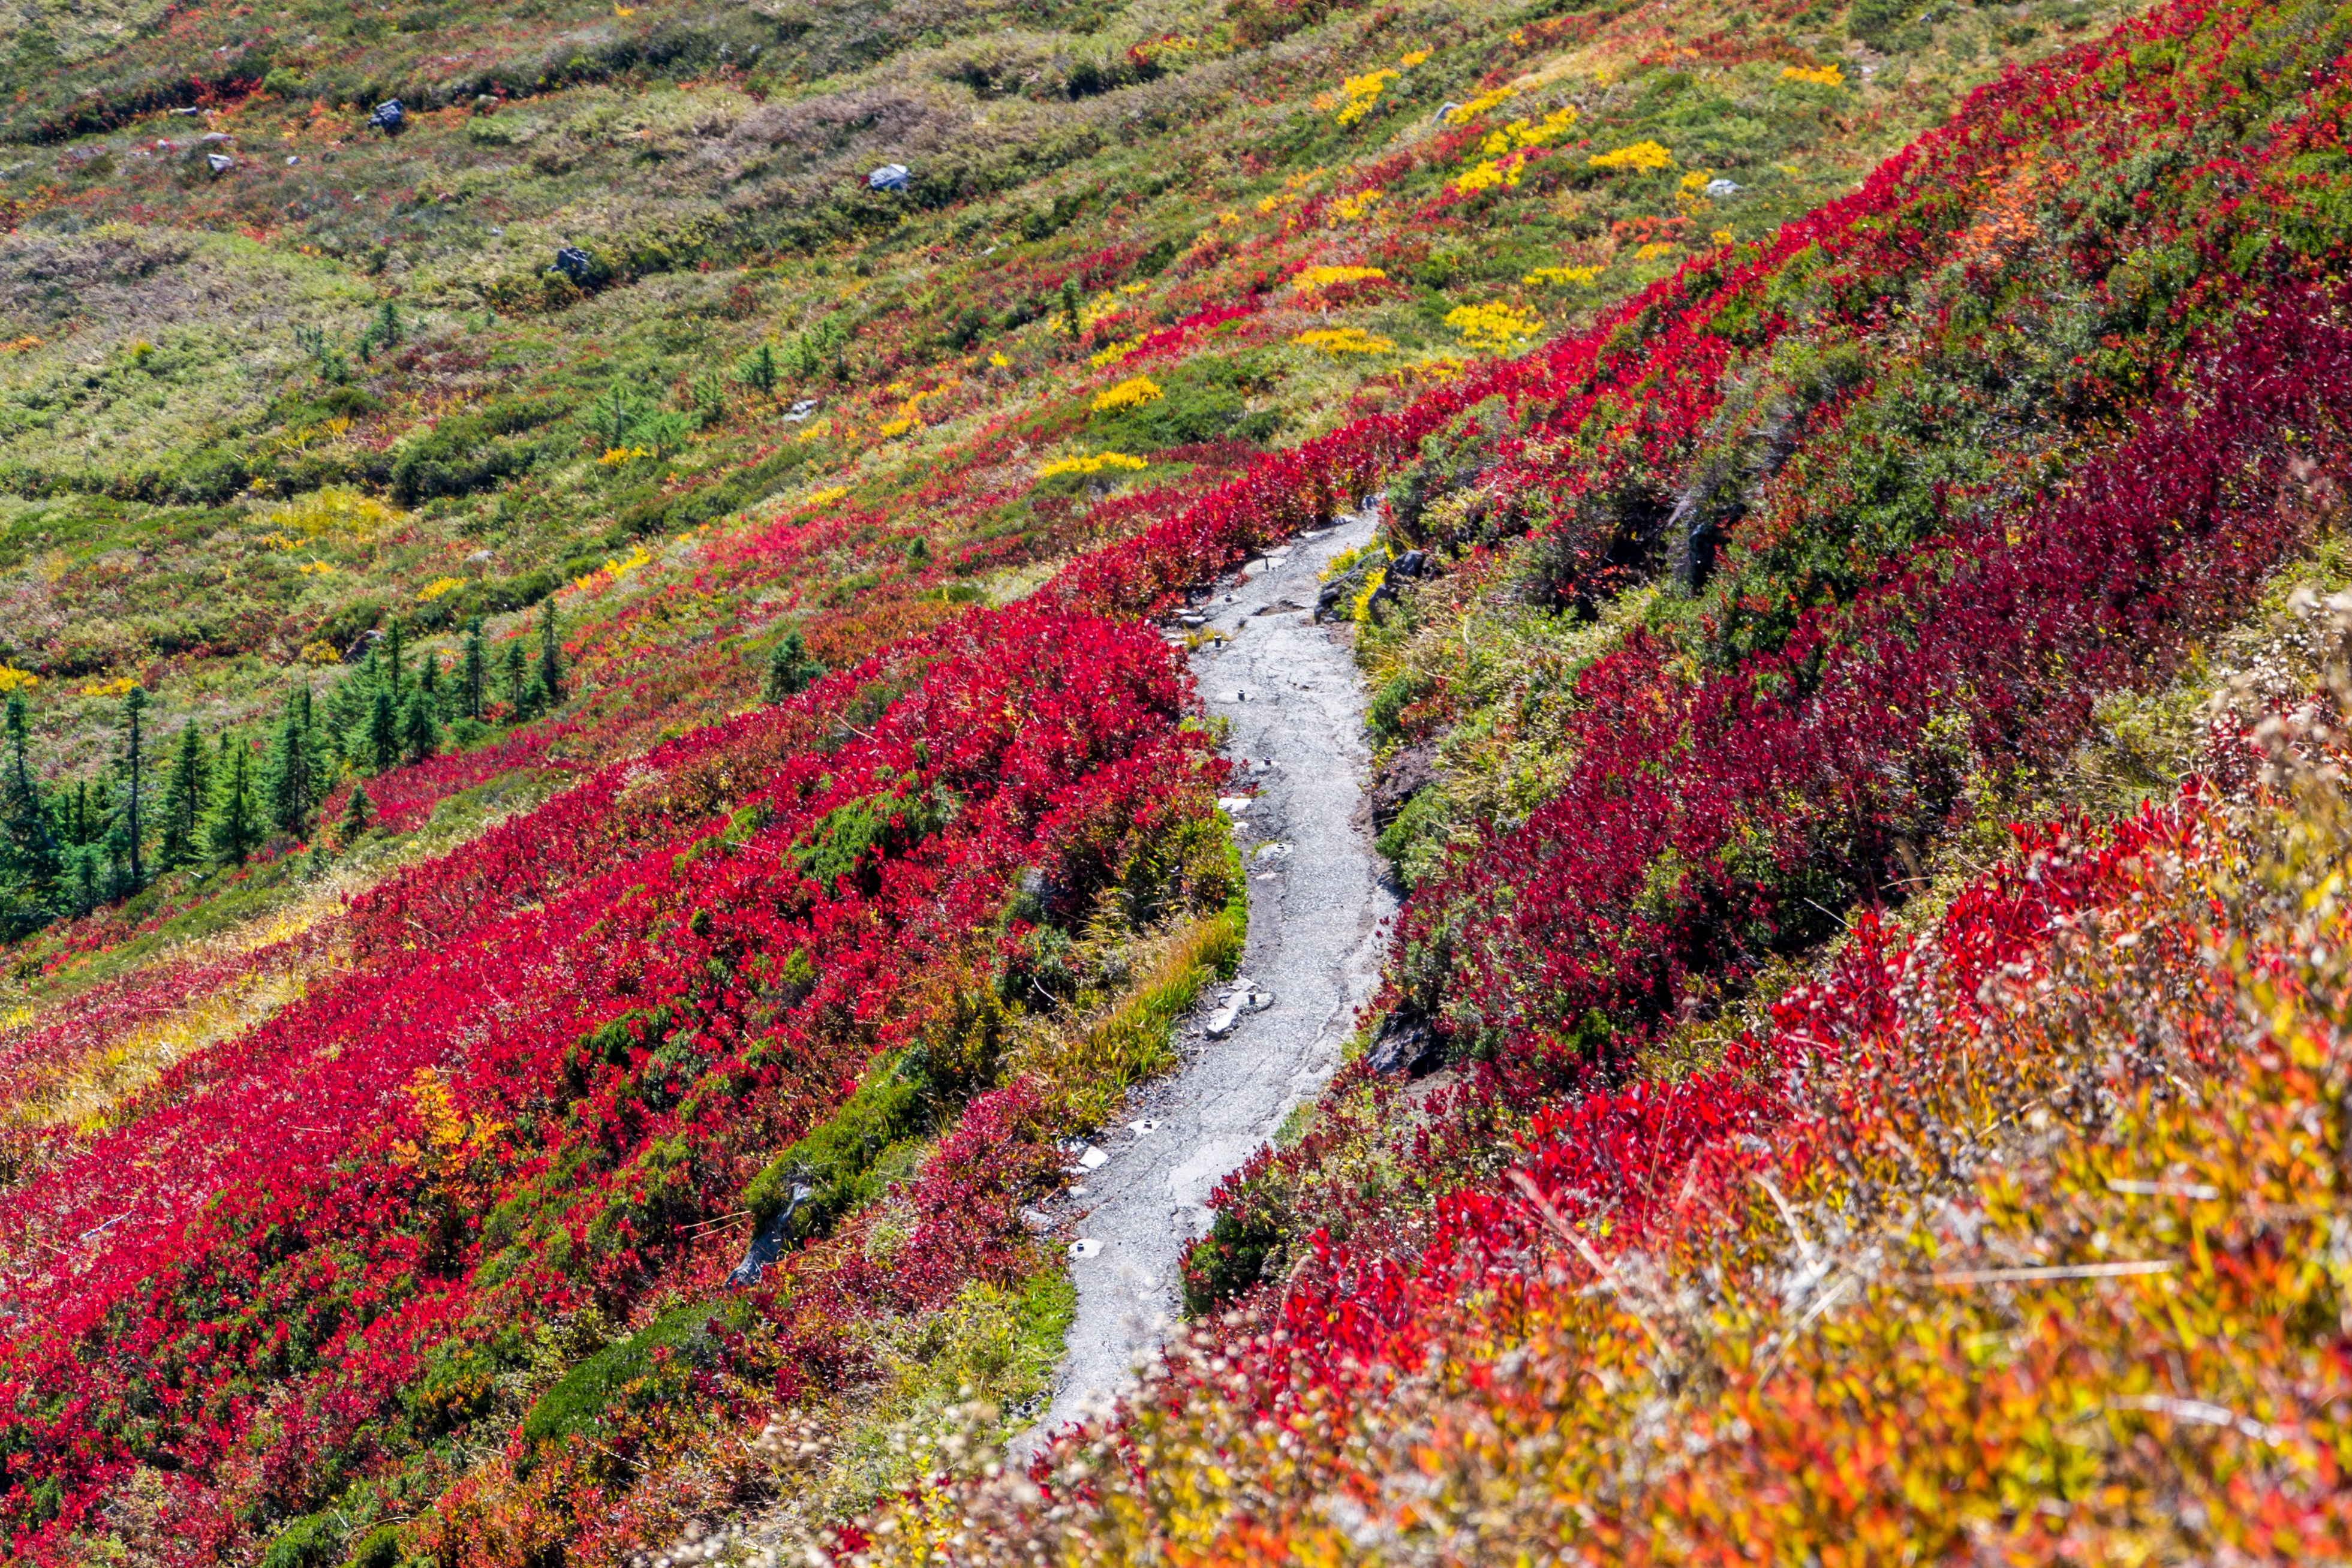 road in middle of red and yellow flower field